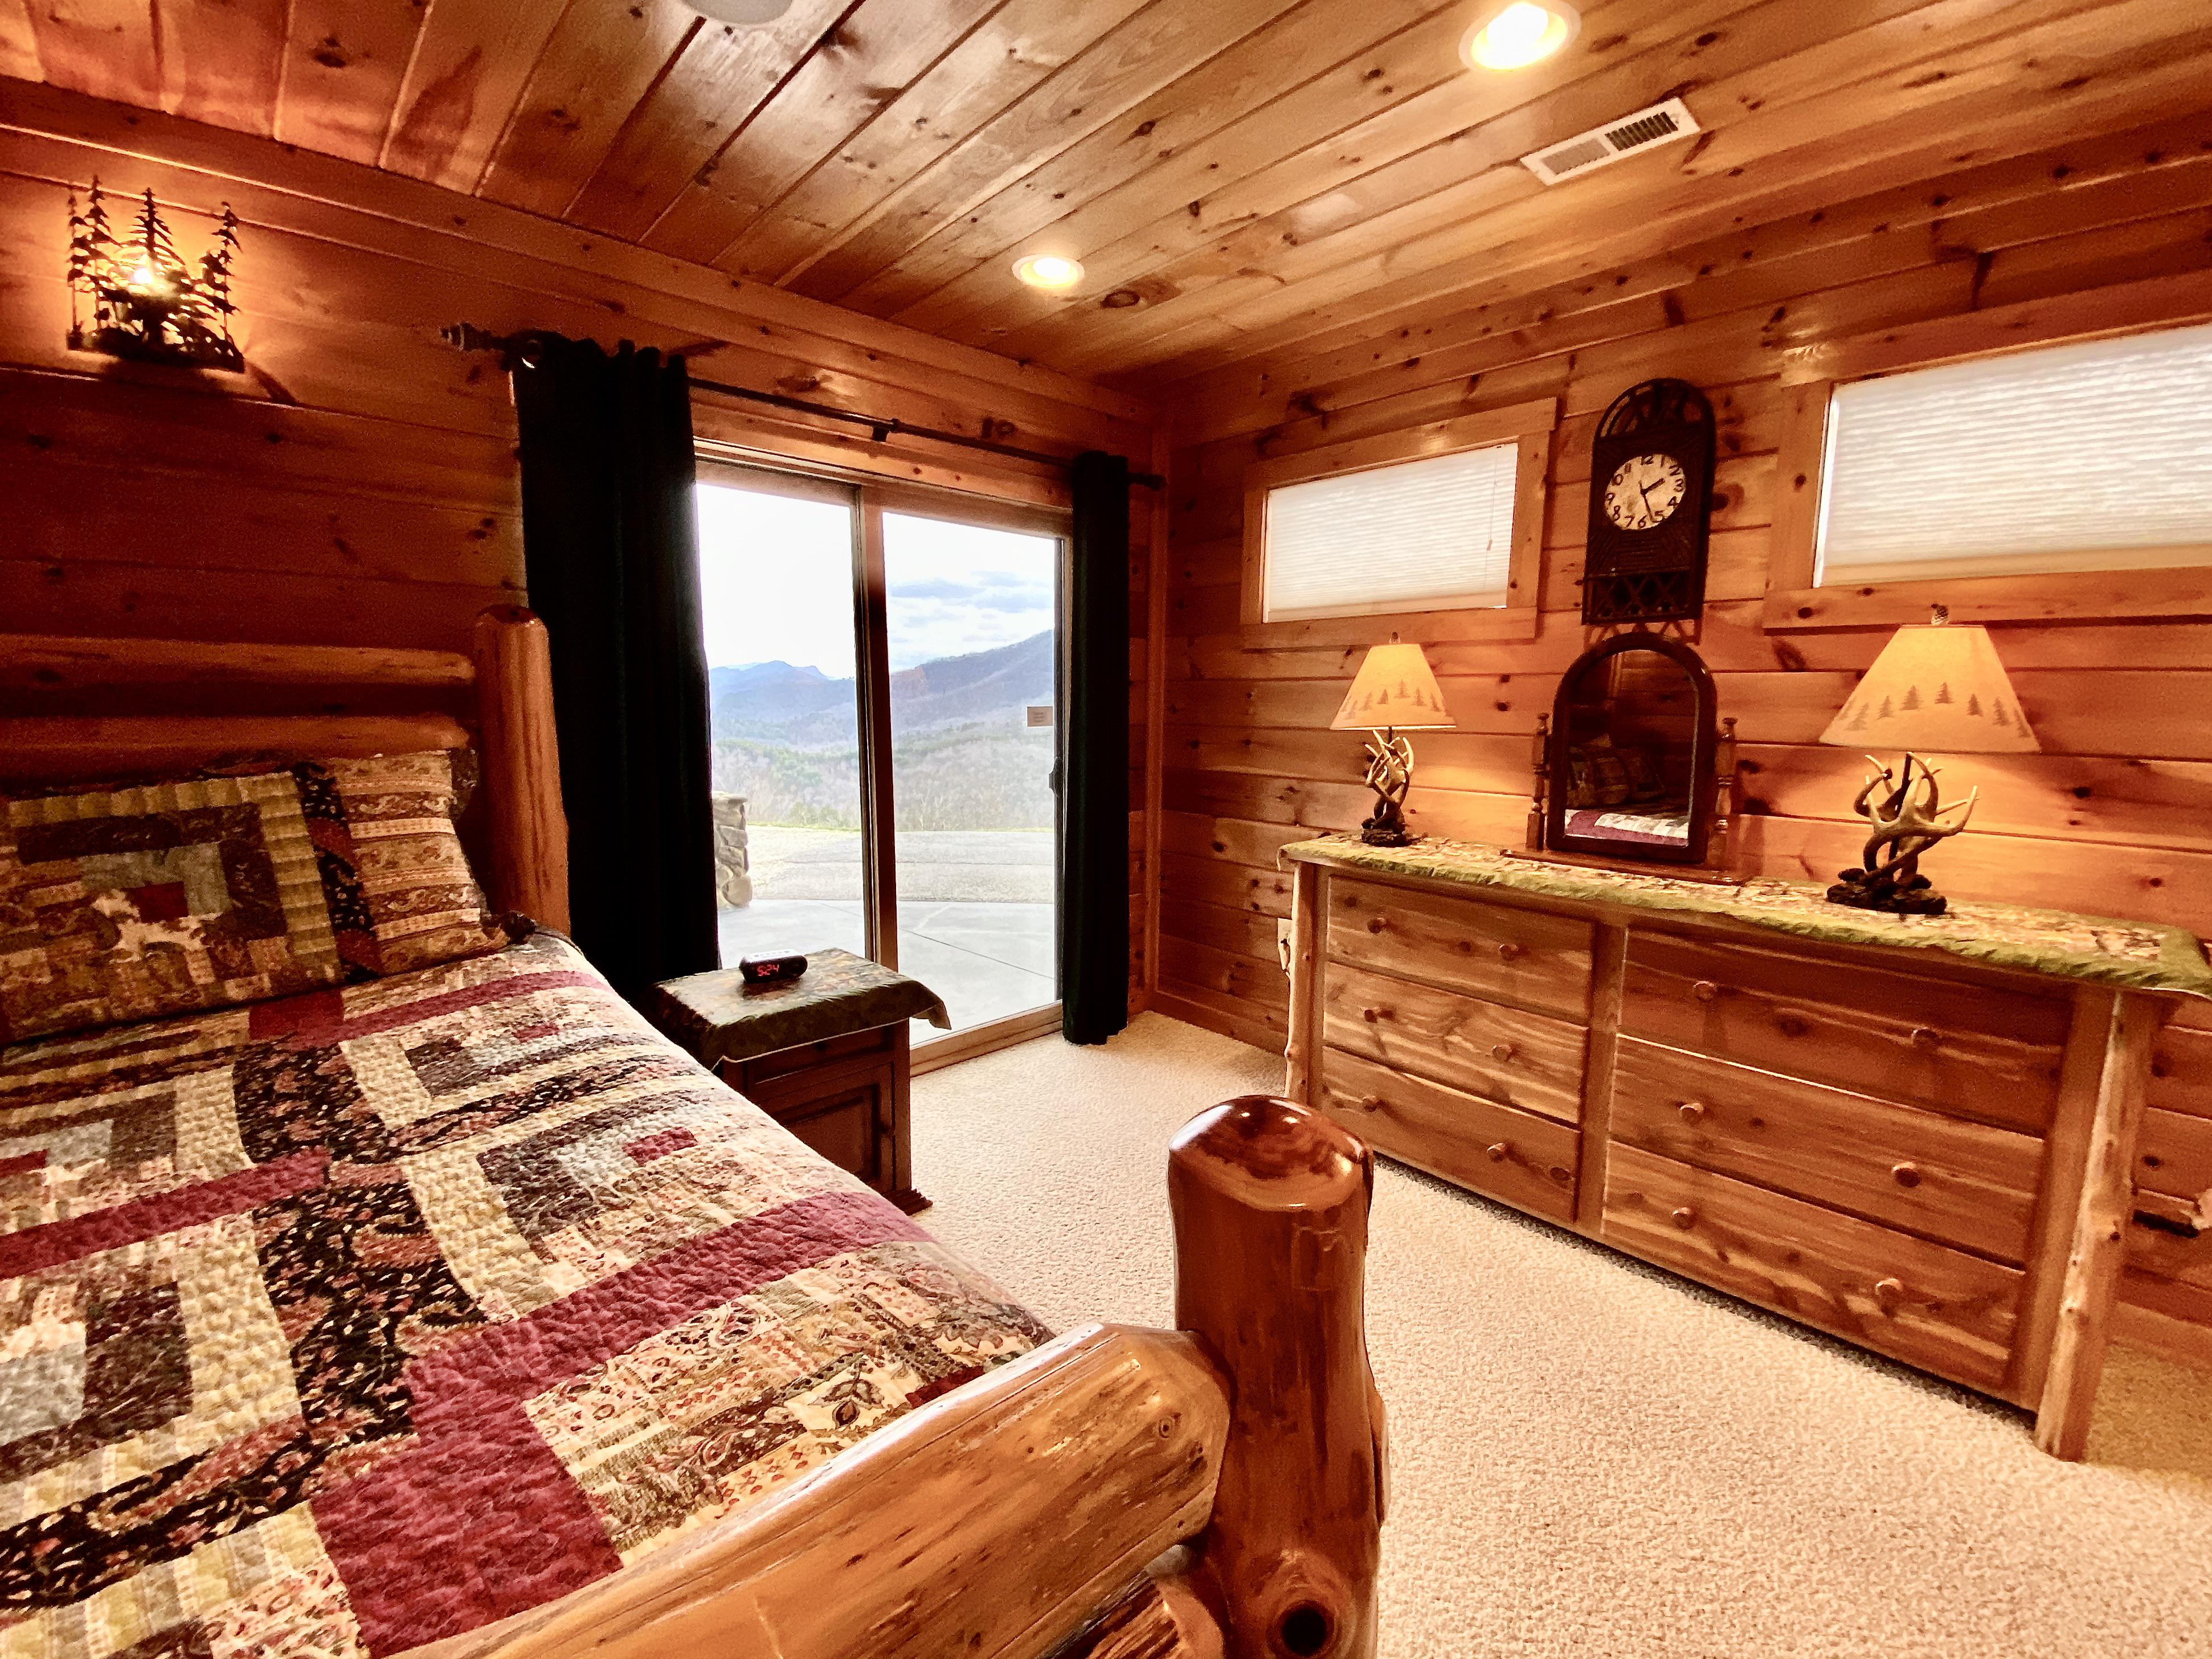 Right View of the Master Bedroom